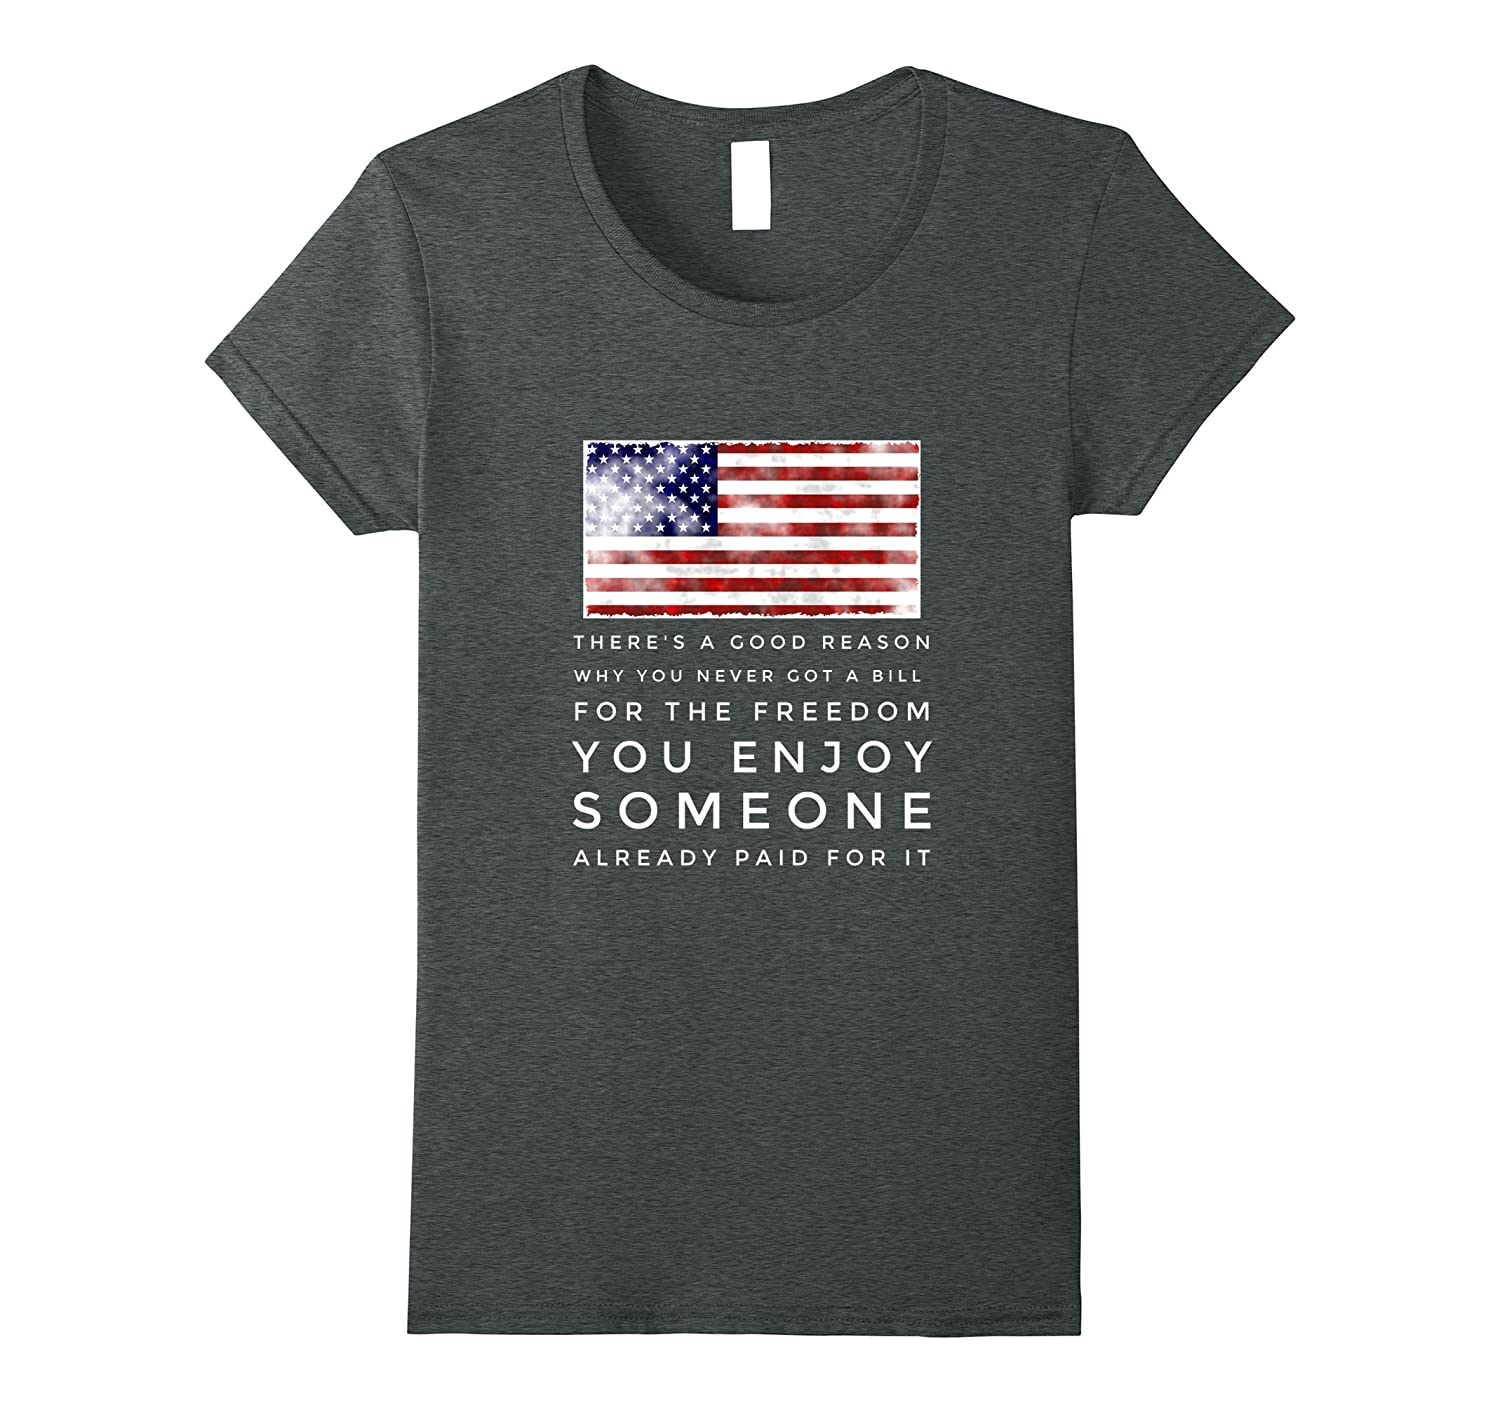 Someone already paid for your freedom cops veterans t-shirt